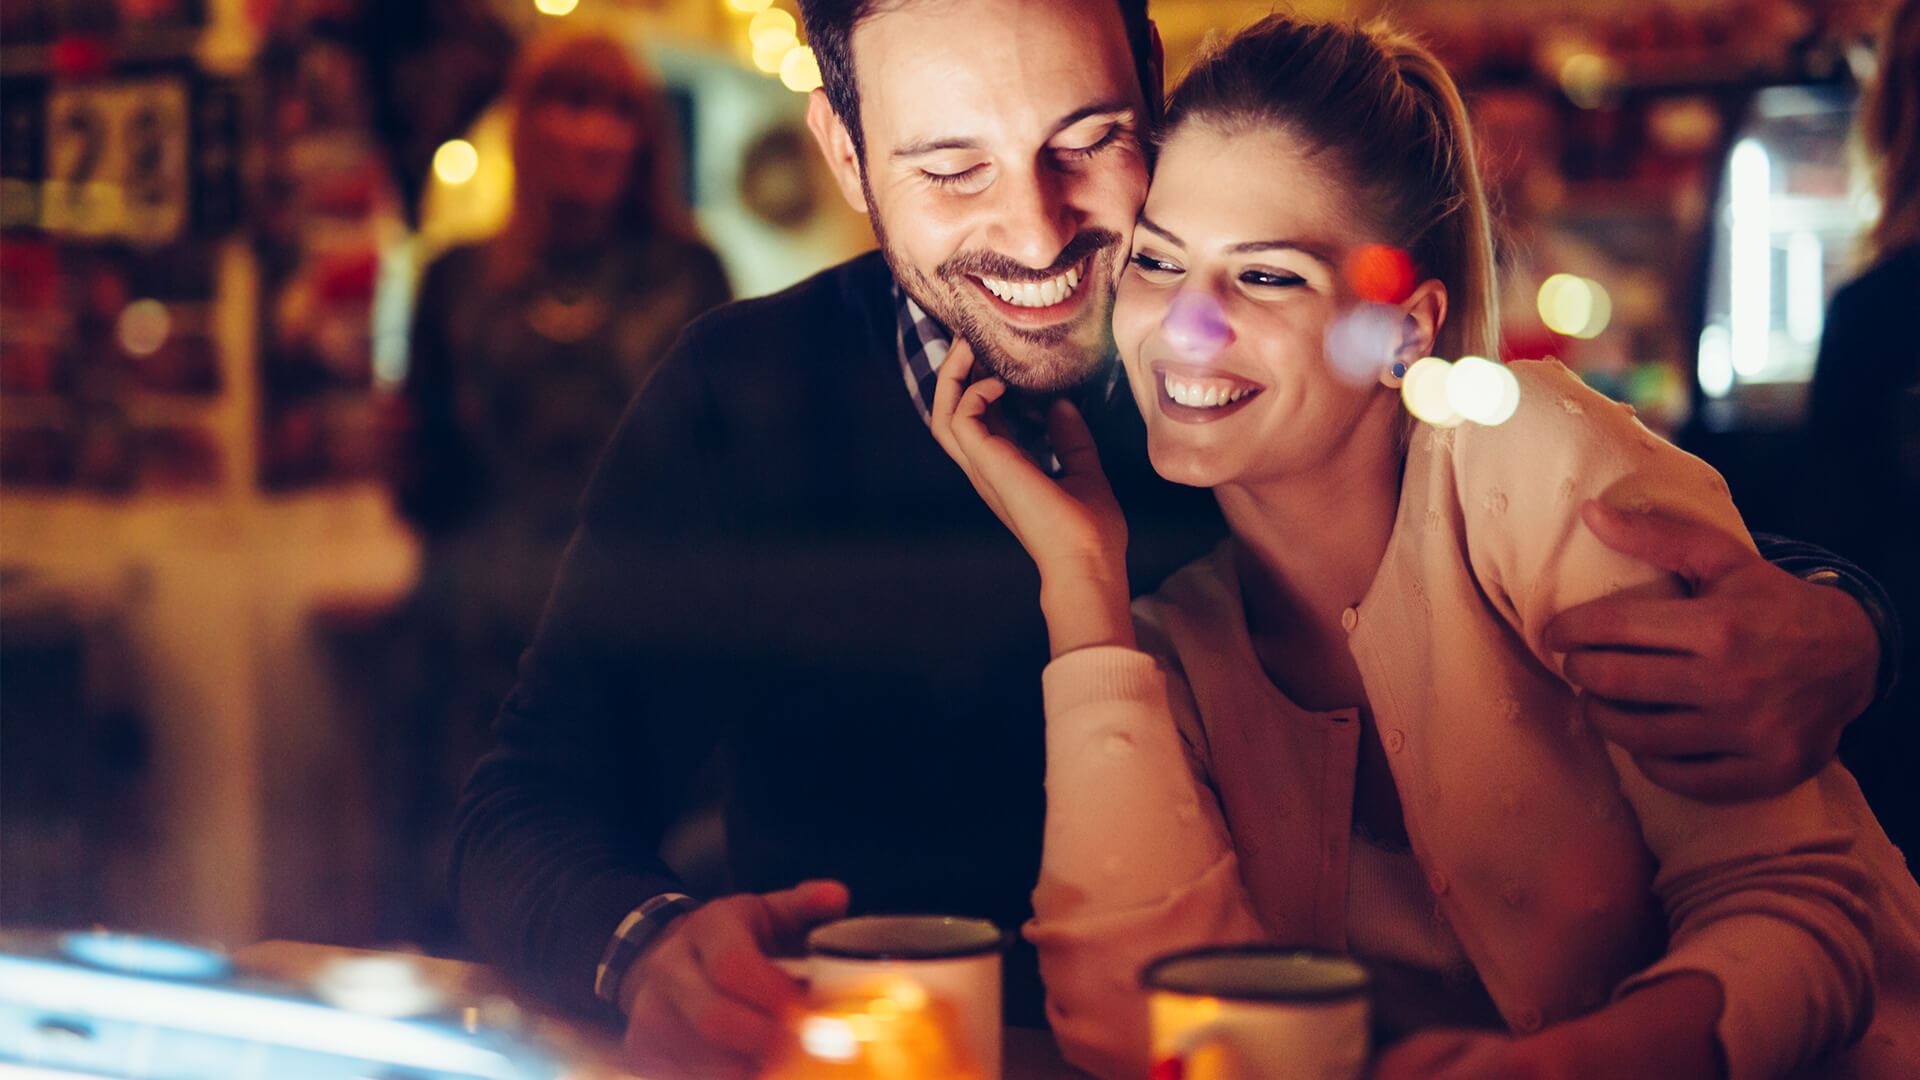 5 Ideas For Date Night In St Catharines